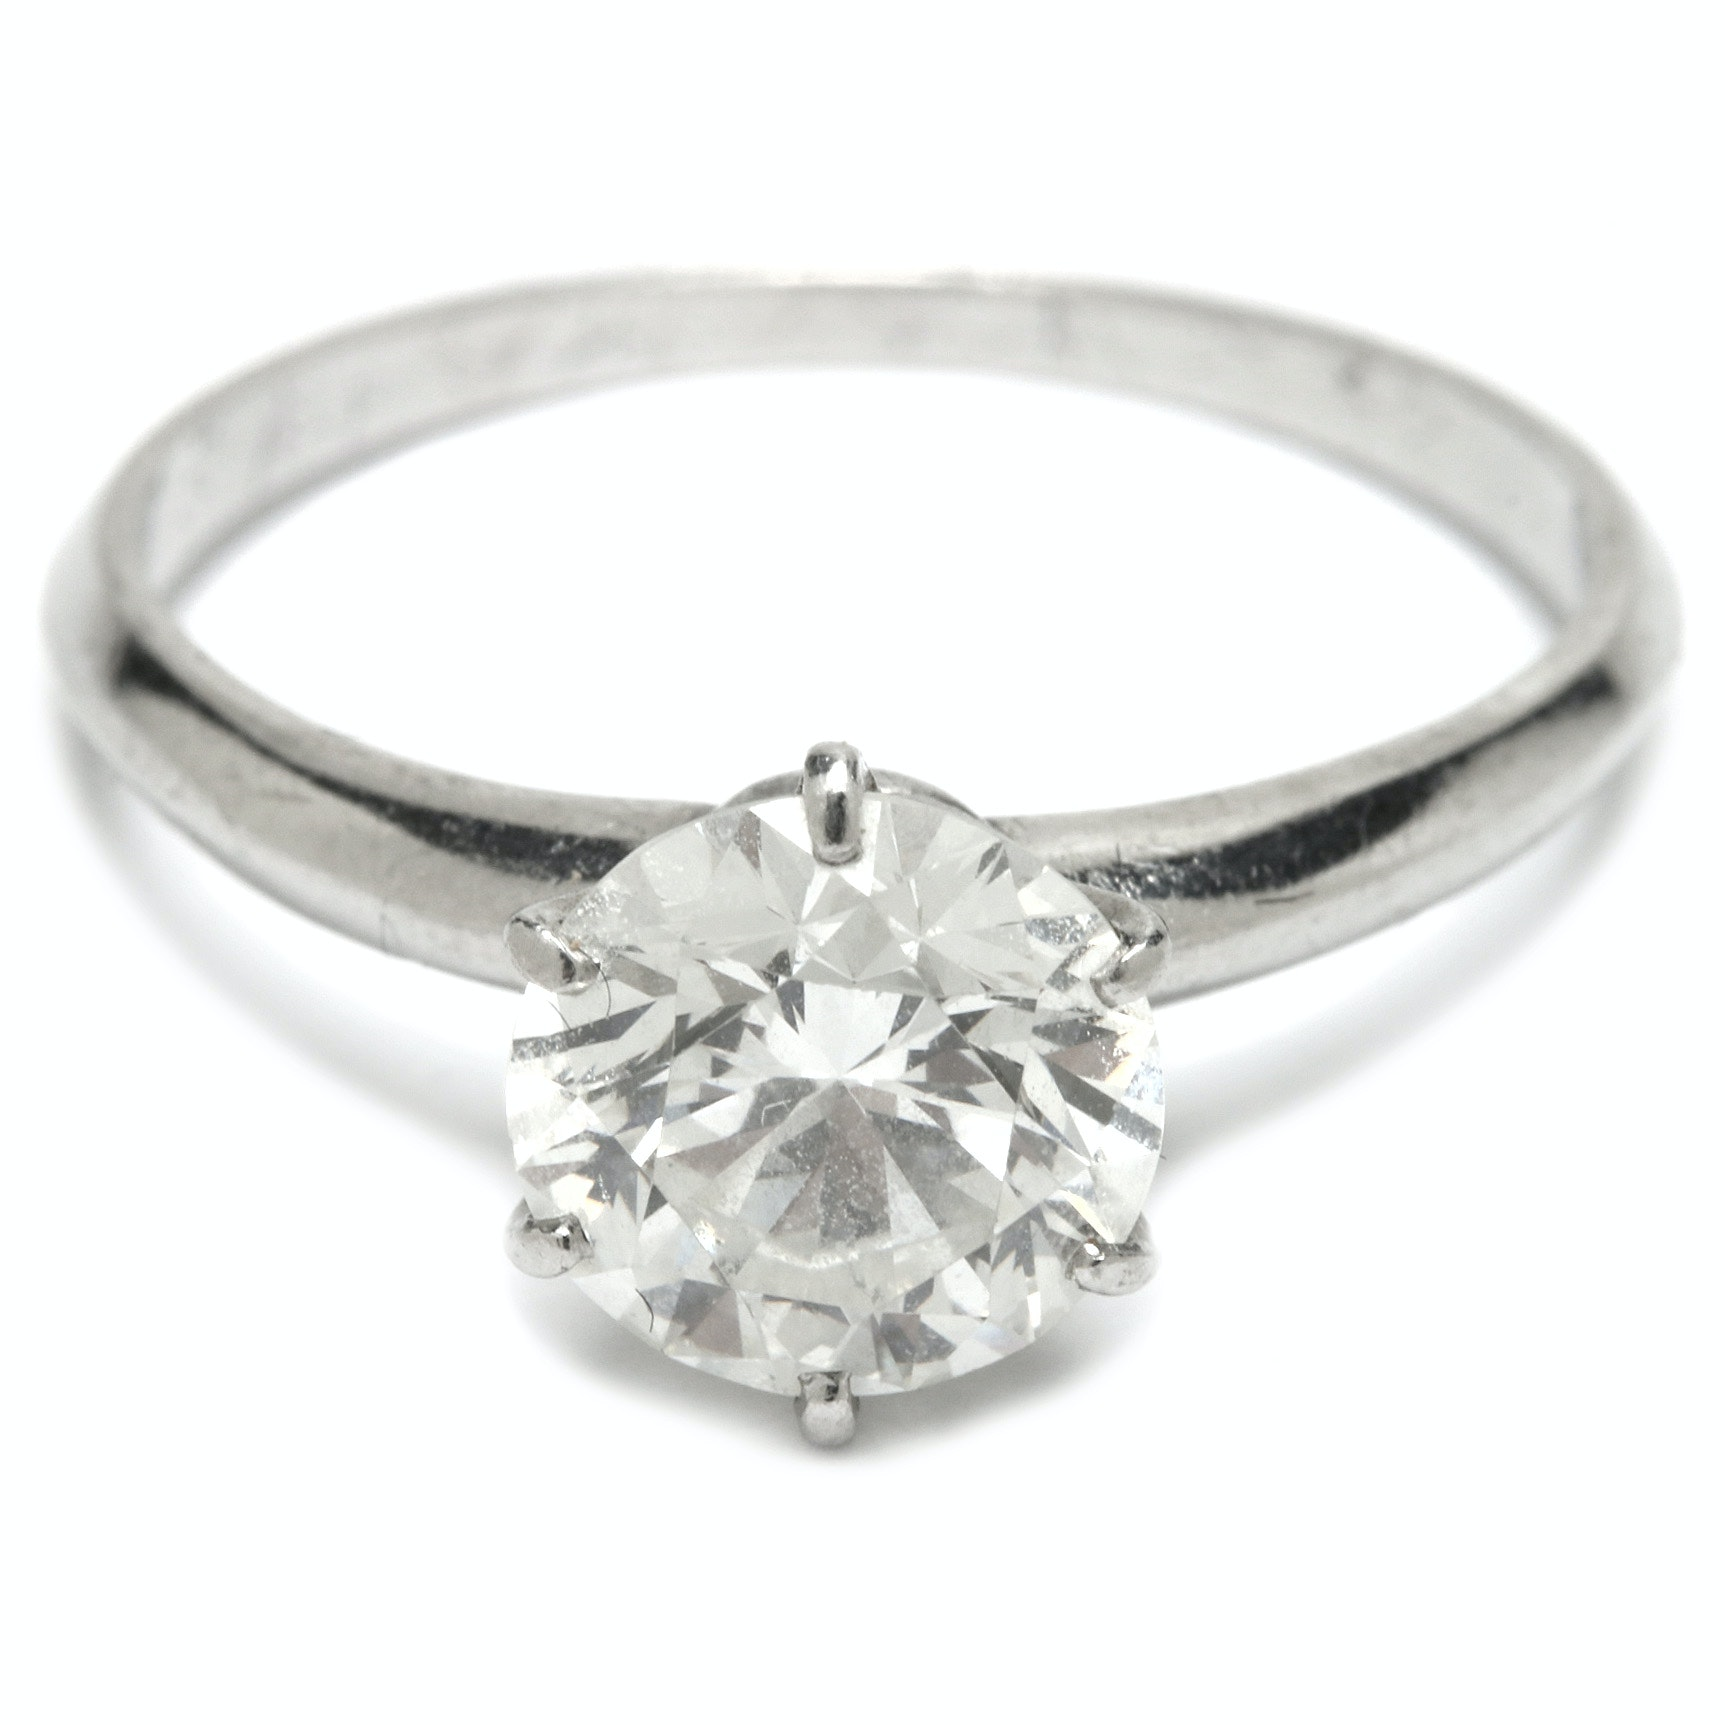 Vintage Tiffany and Co. Platinum 1.85 CT Diamond Solitaire Ring